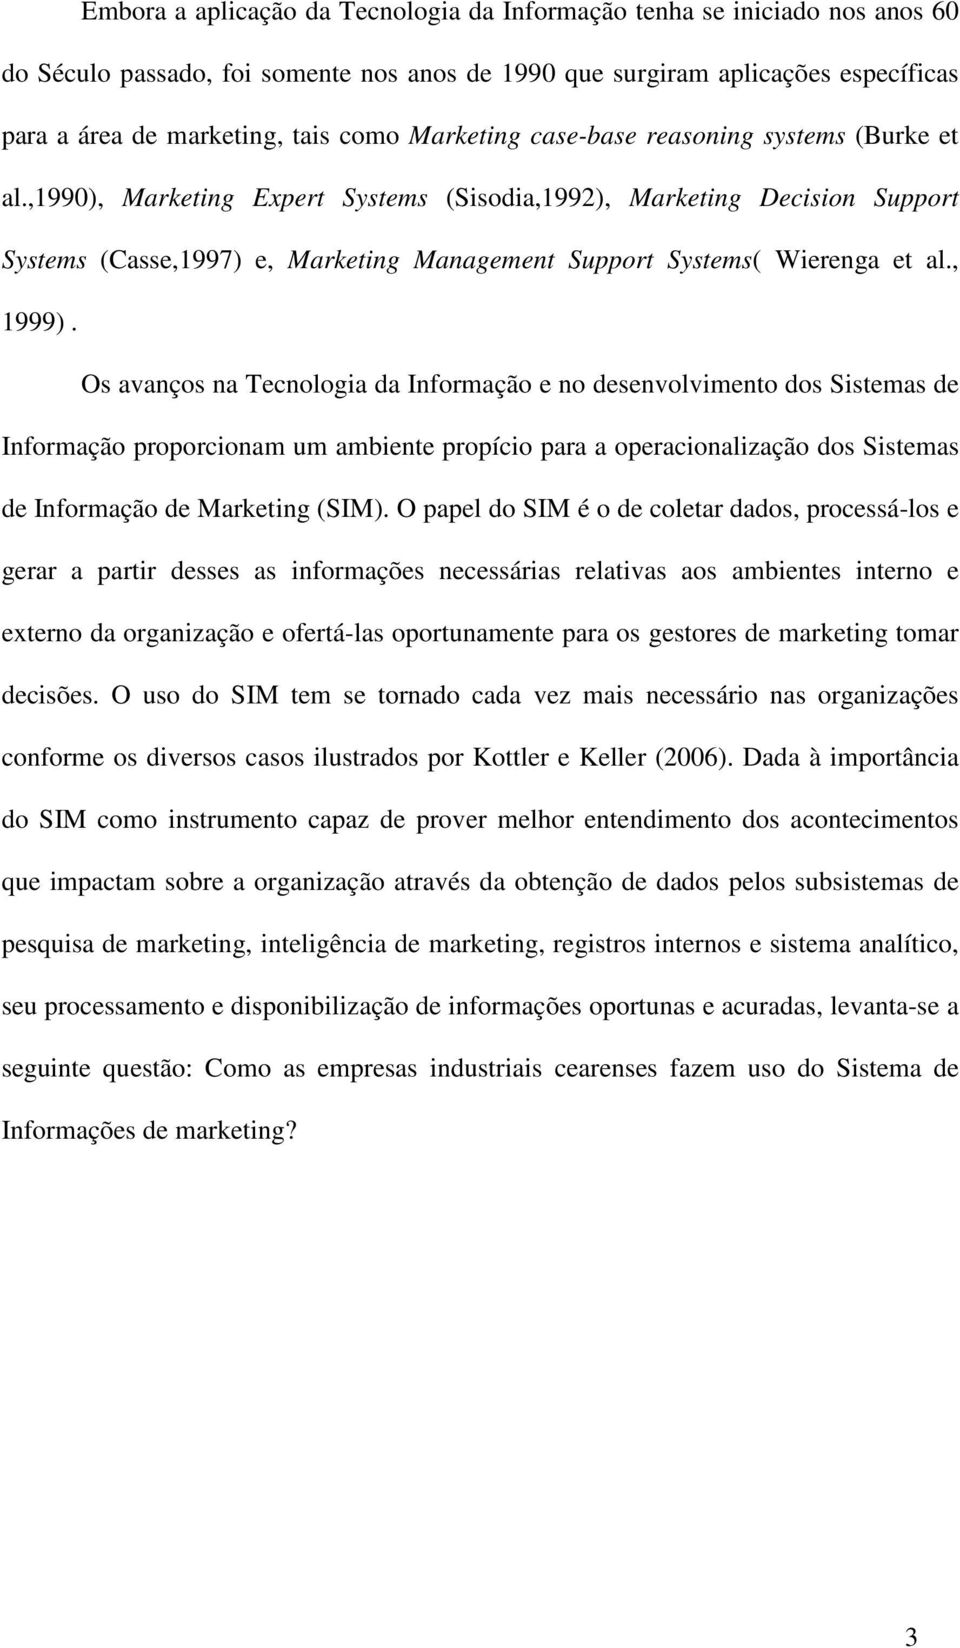 ,1990), Marketing Expert Systems (Sisodia,1992), Marketing Decision Support Systems (Casse,1997) e, Marketing Management Support Systems( Wierenga et al., 1999).